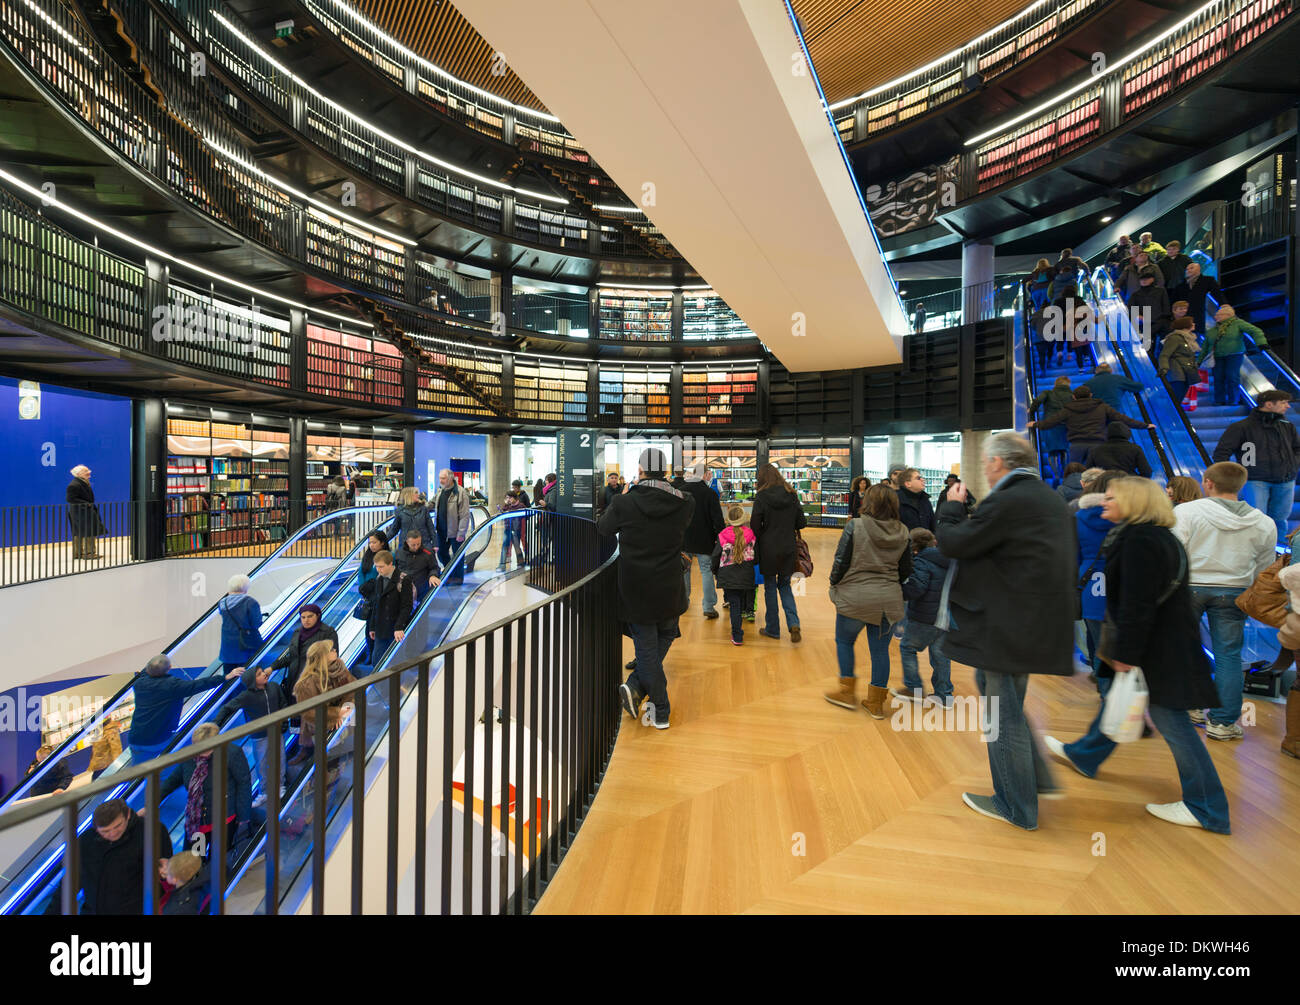 The interior of the new Library of Birmingham, England. - Stock Image